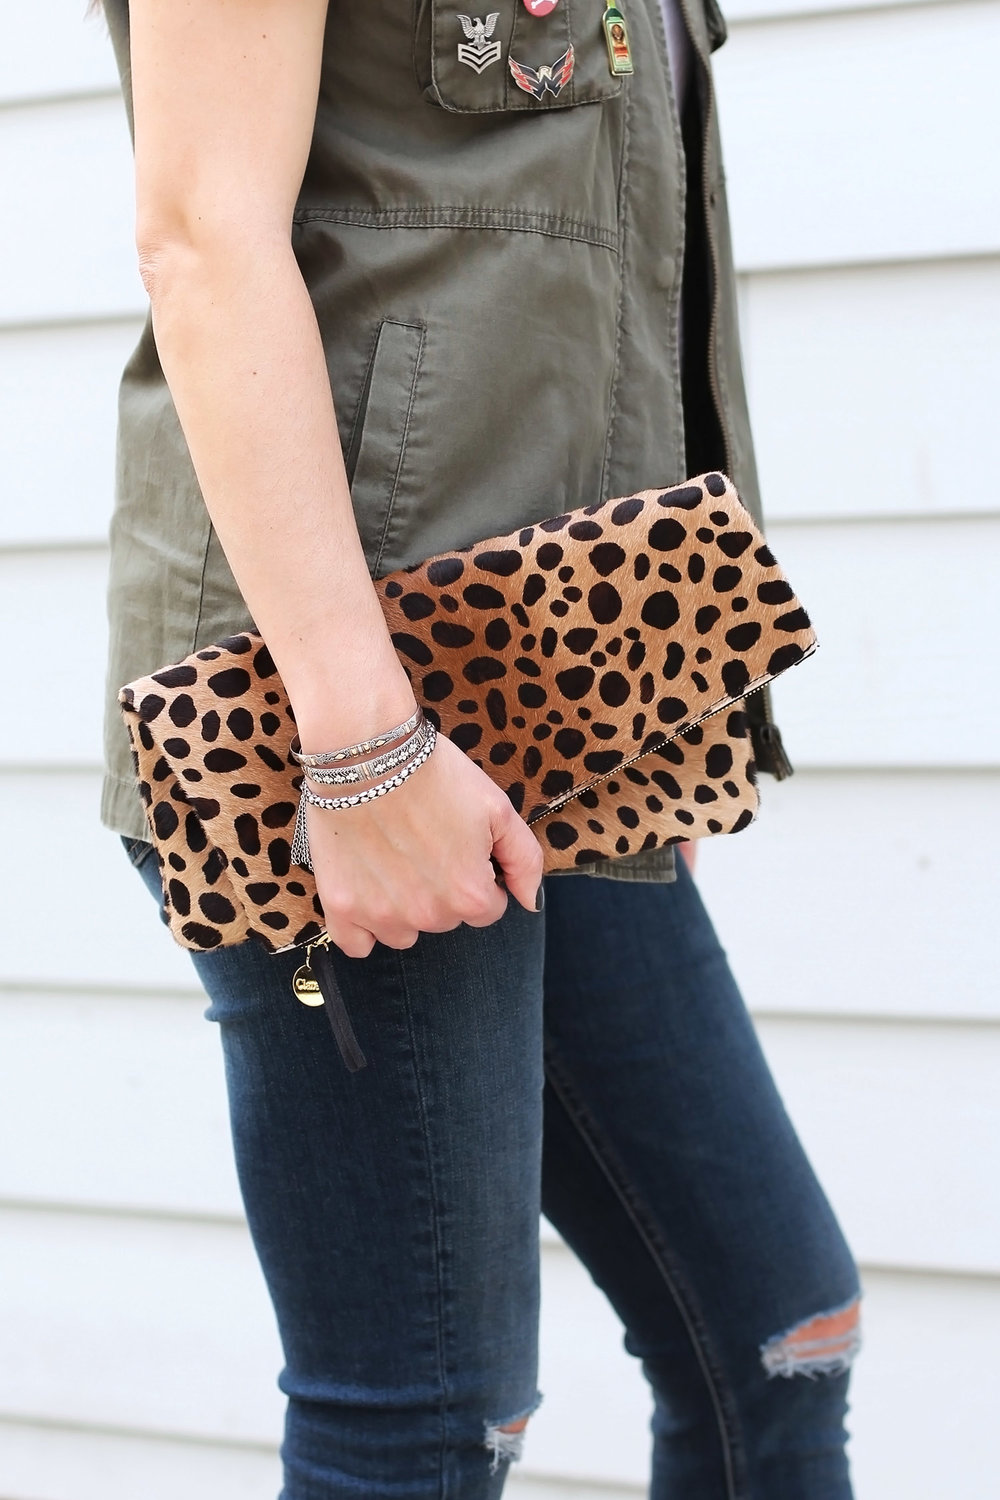 Leopard Print Clutch, Folder over clutch